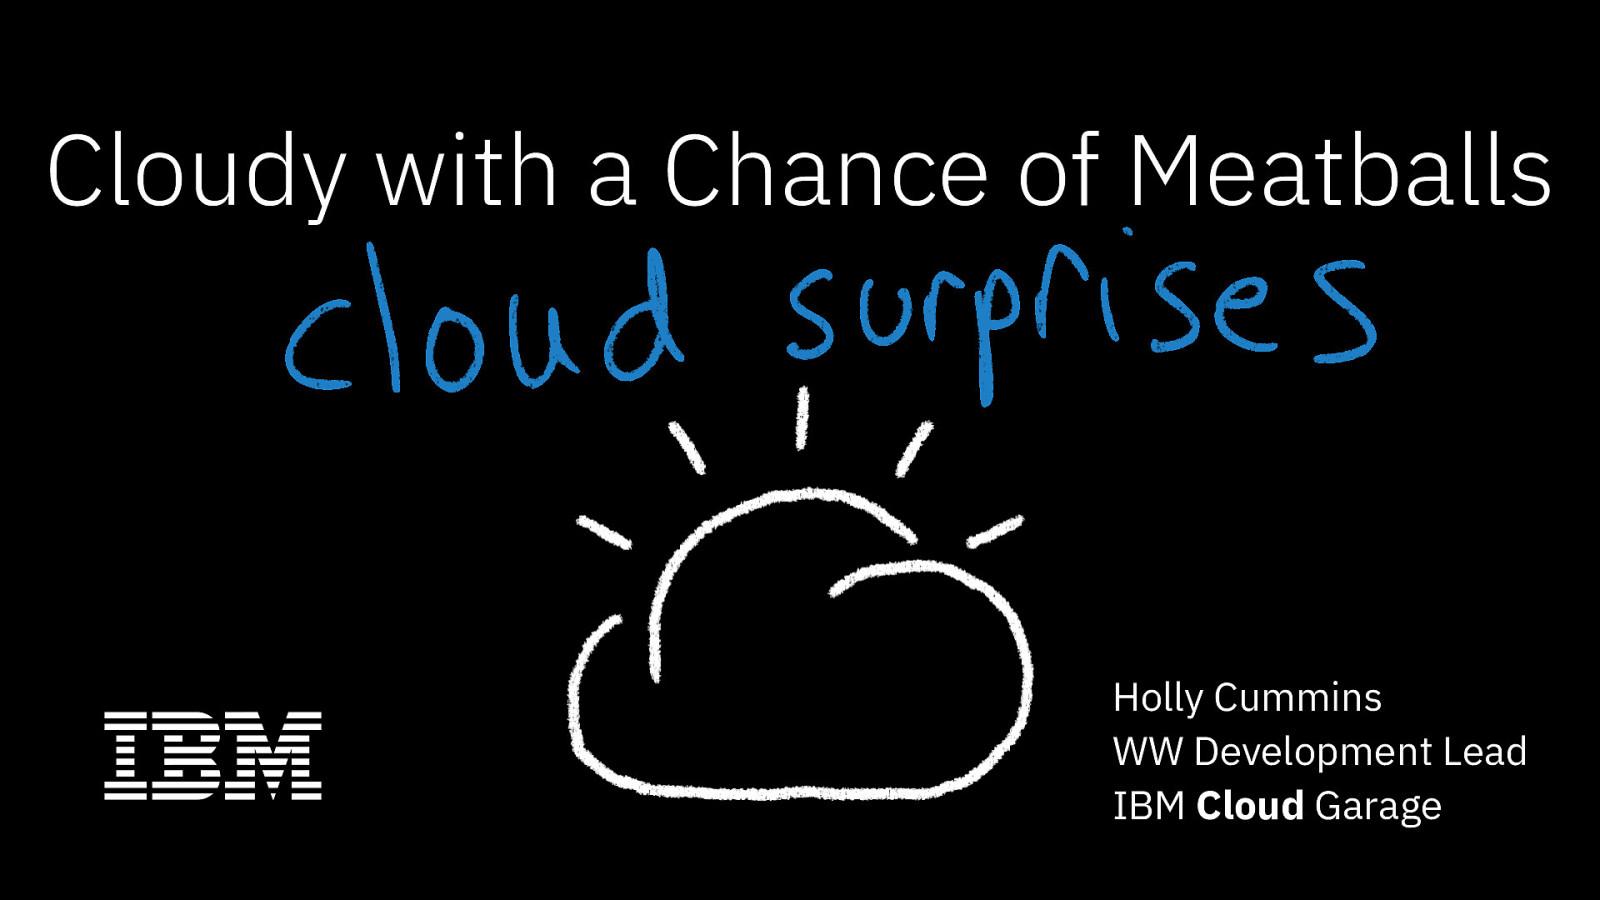 Cloudy with a Chance of Meatballs: Cloud Surprises for the Java Developer (keynote)